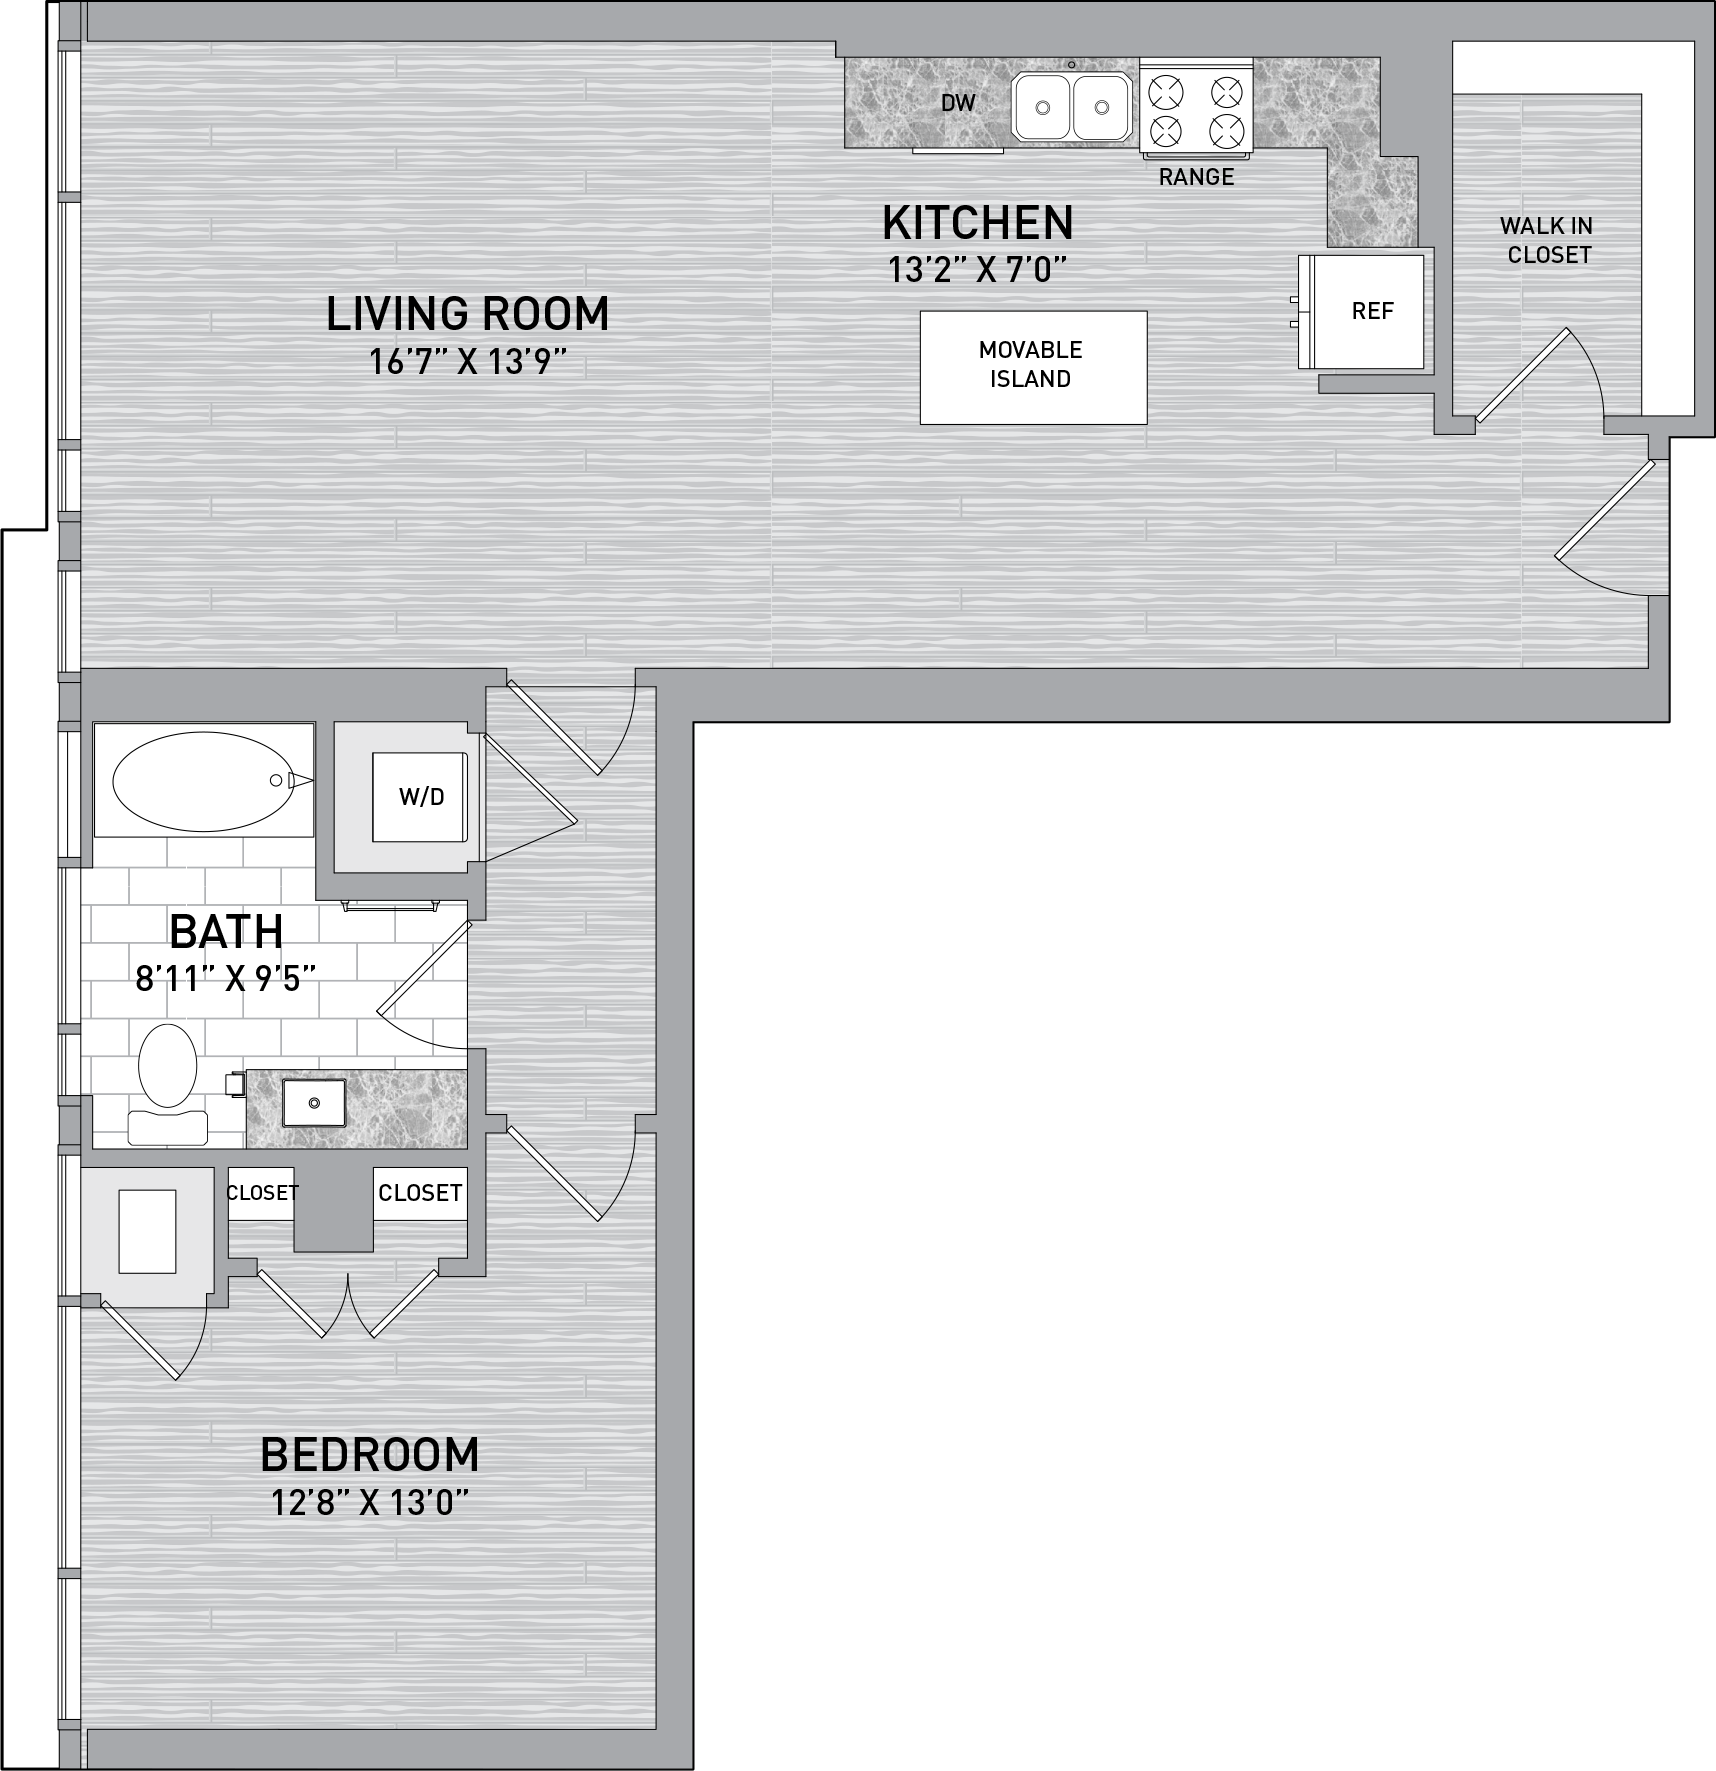 floorplan image of unit id 1026